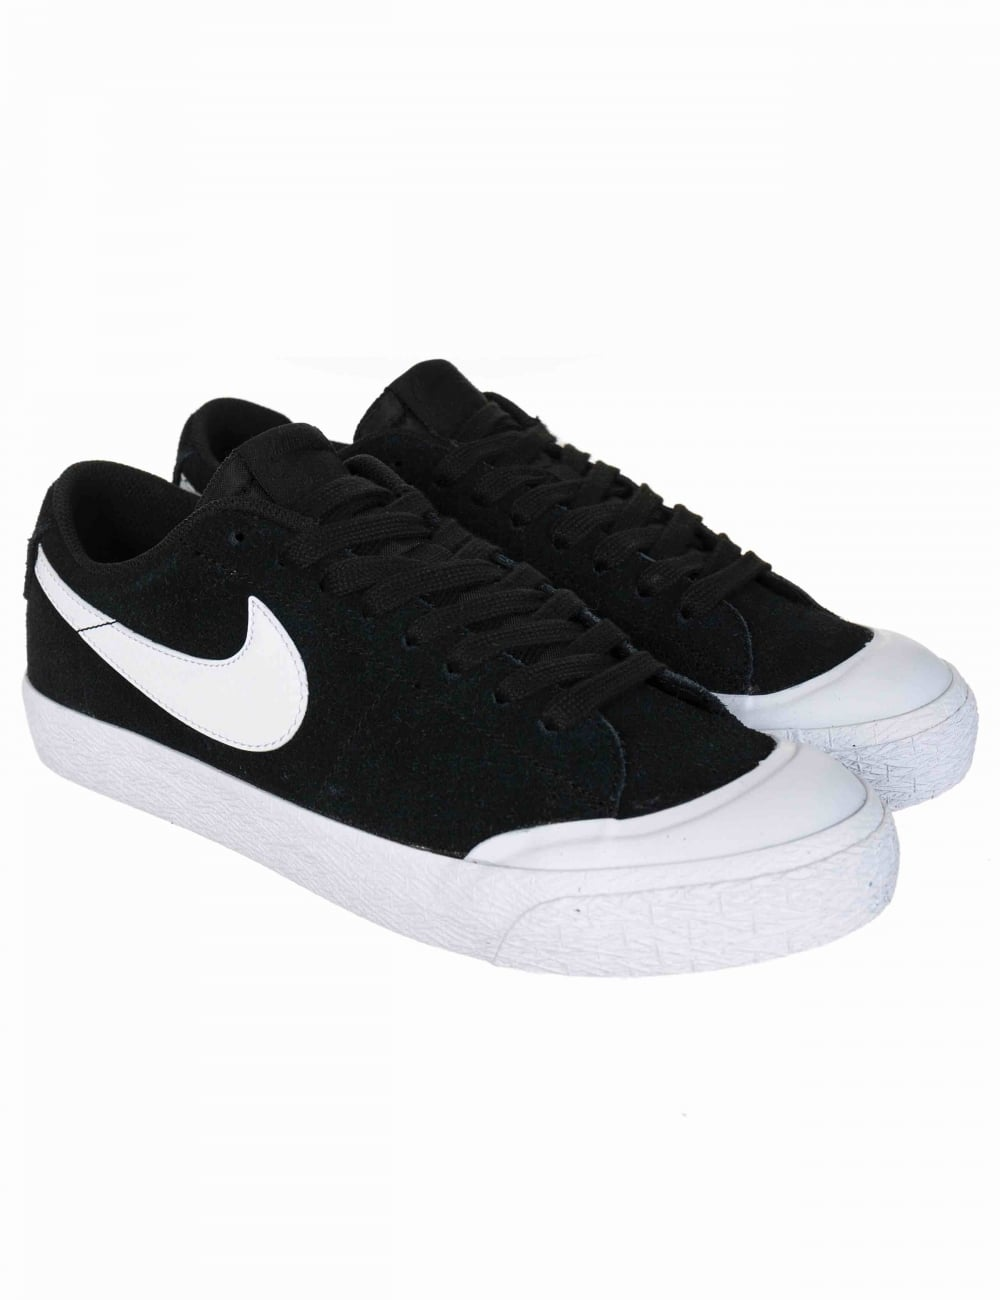 94438c5d118 Nike SB Blazer Zoom Low GT Shoes - Black White - Footwear from Fat ...